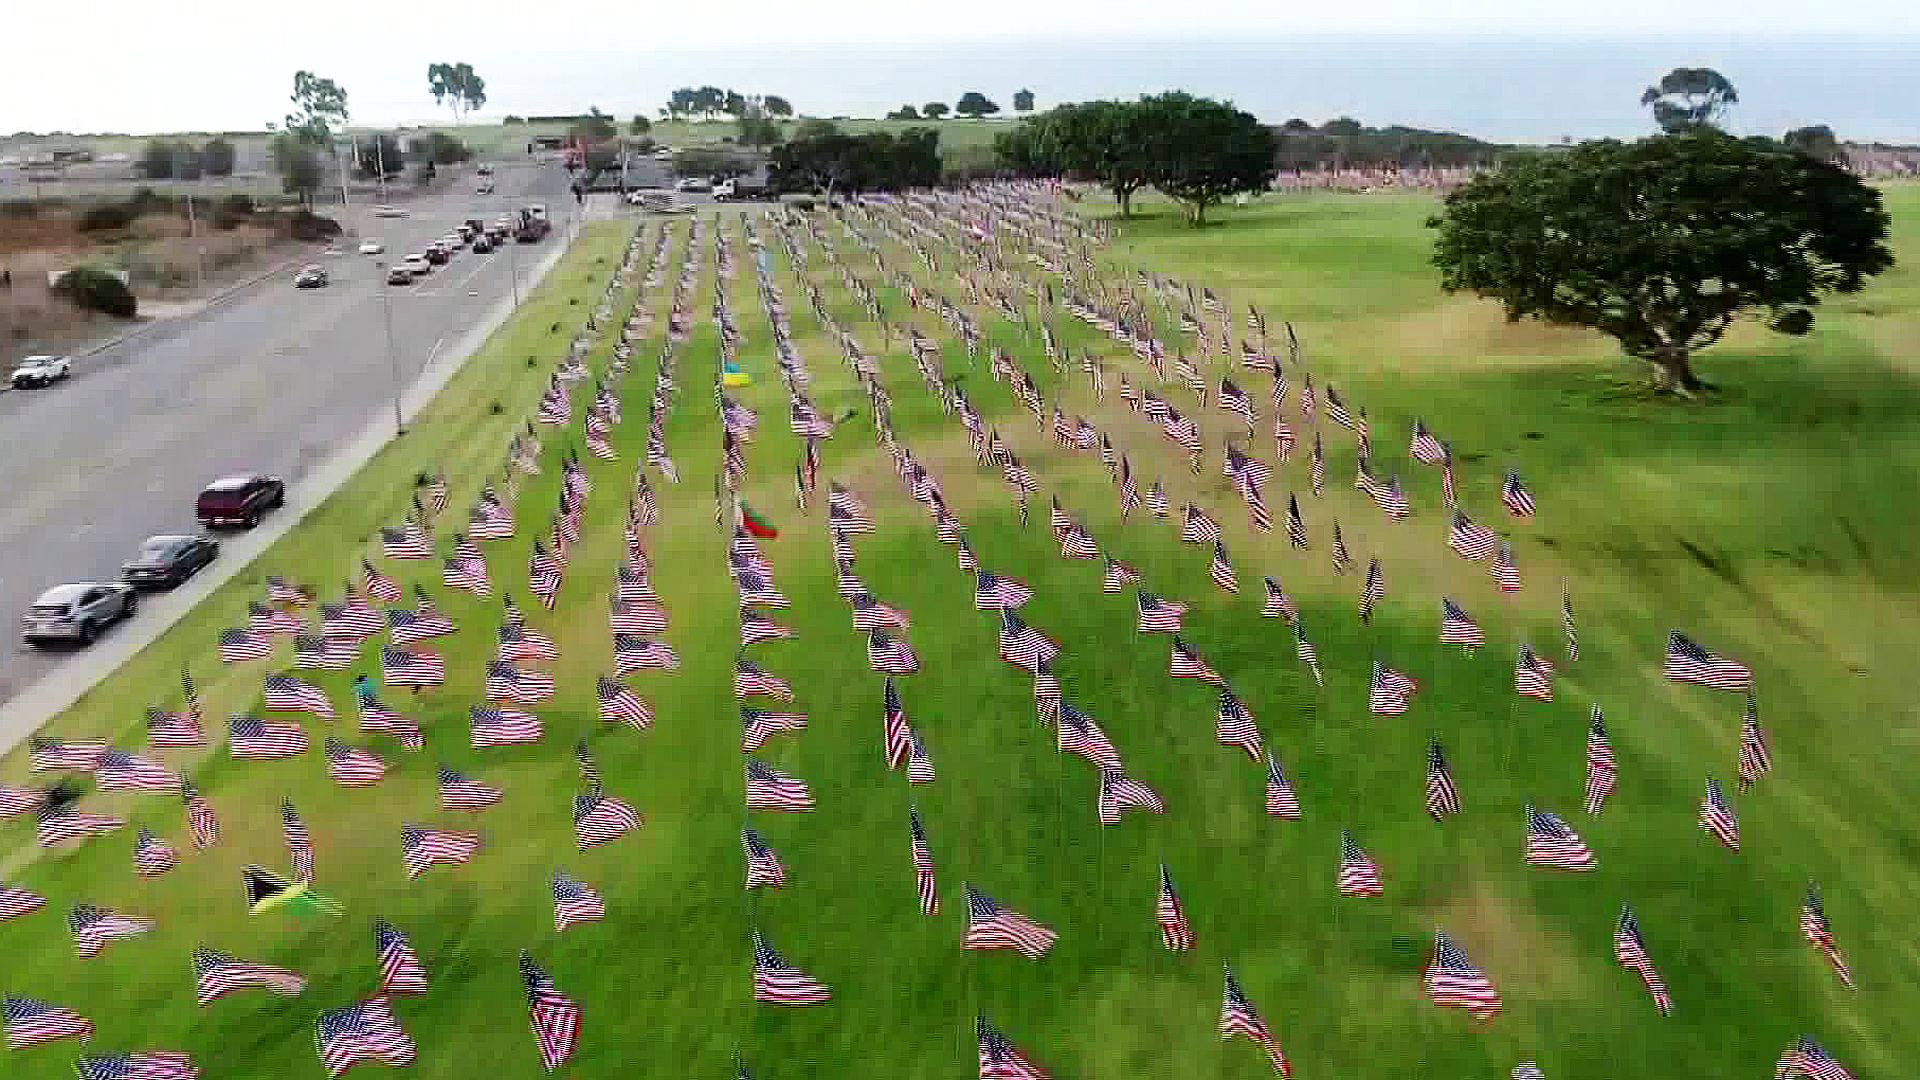 The Waves of Flags tribute to 9/11 victims is seen on Sept. 11, 2019. (Credit: KTLA)